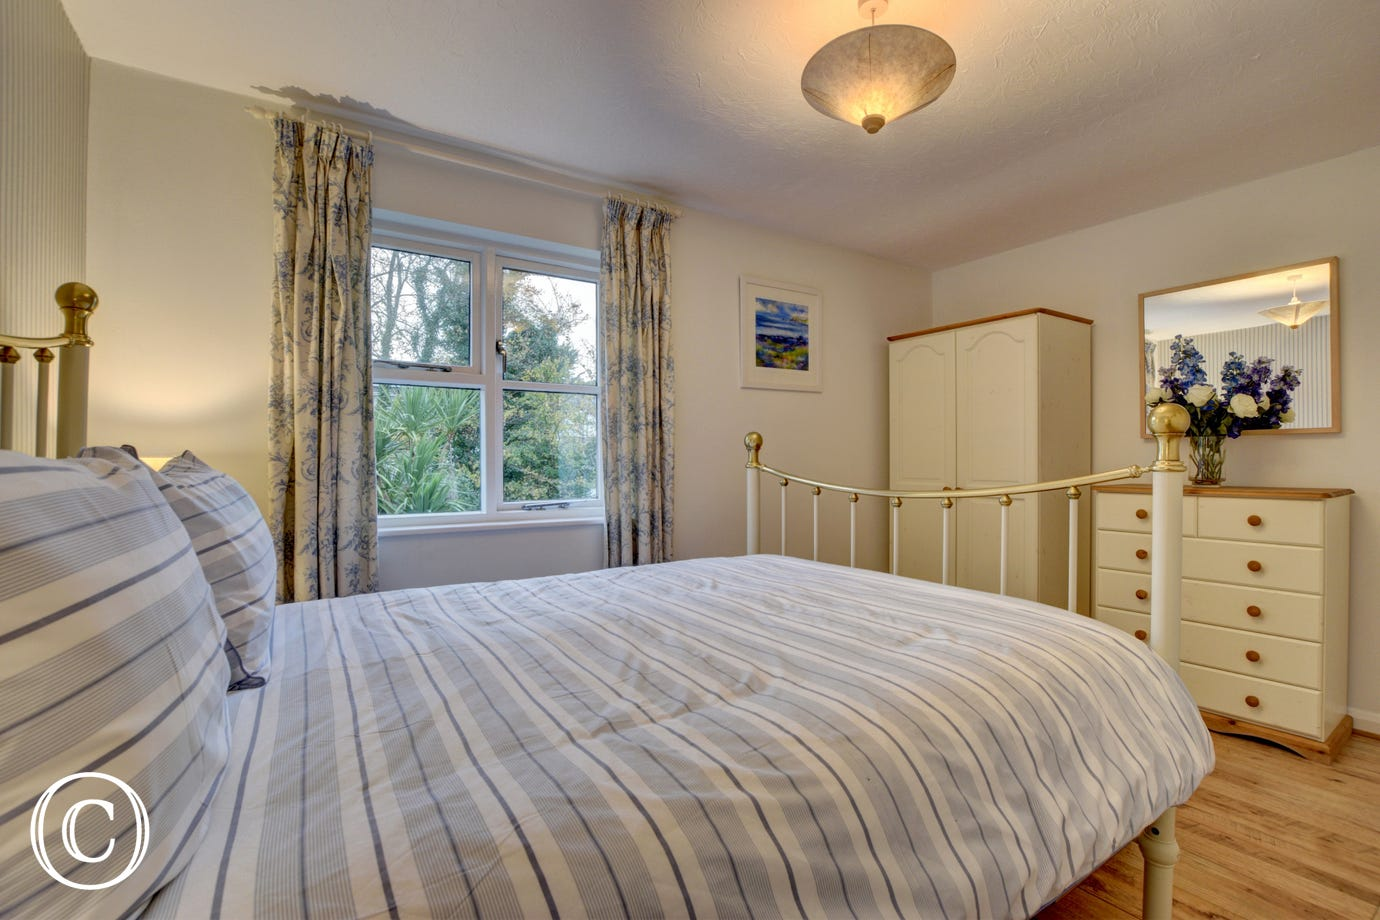 Attractive master bedroom with under floor heating